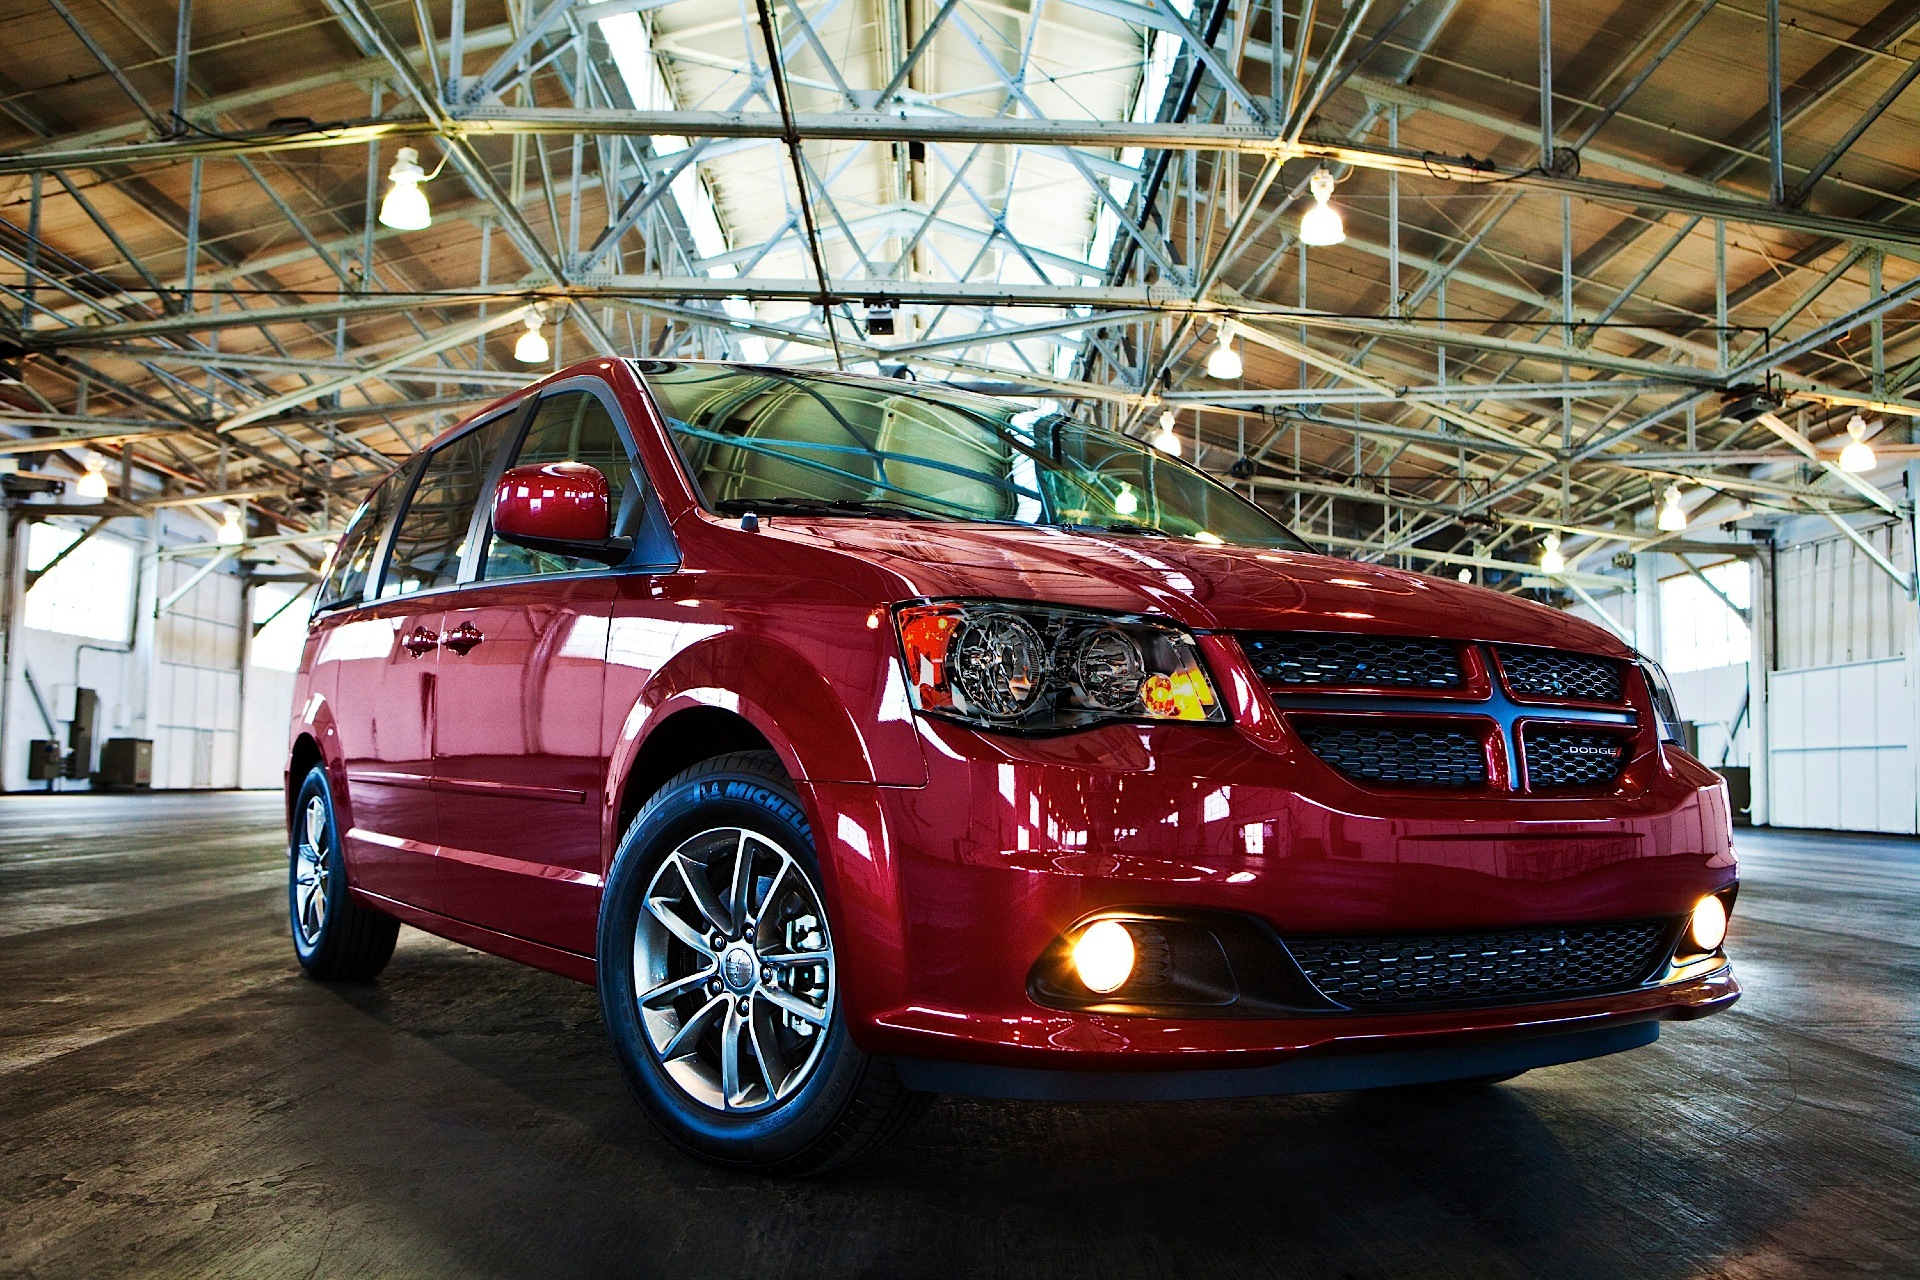 Dodge Grand Caravan Seating >> DODGE Grand Caravan specs & photos - 2008, 2009, 2010, 2011, 2012, 2013, 2014 - autoevolution